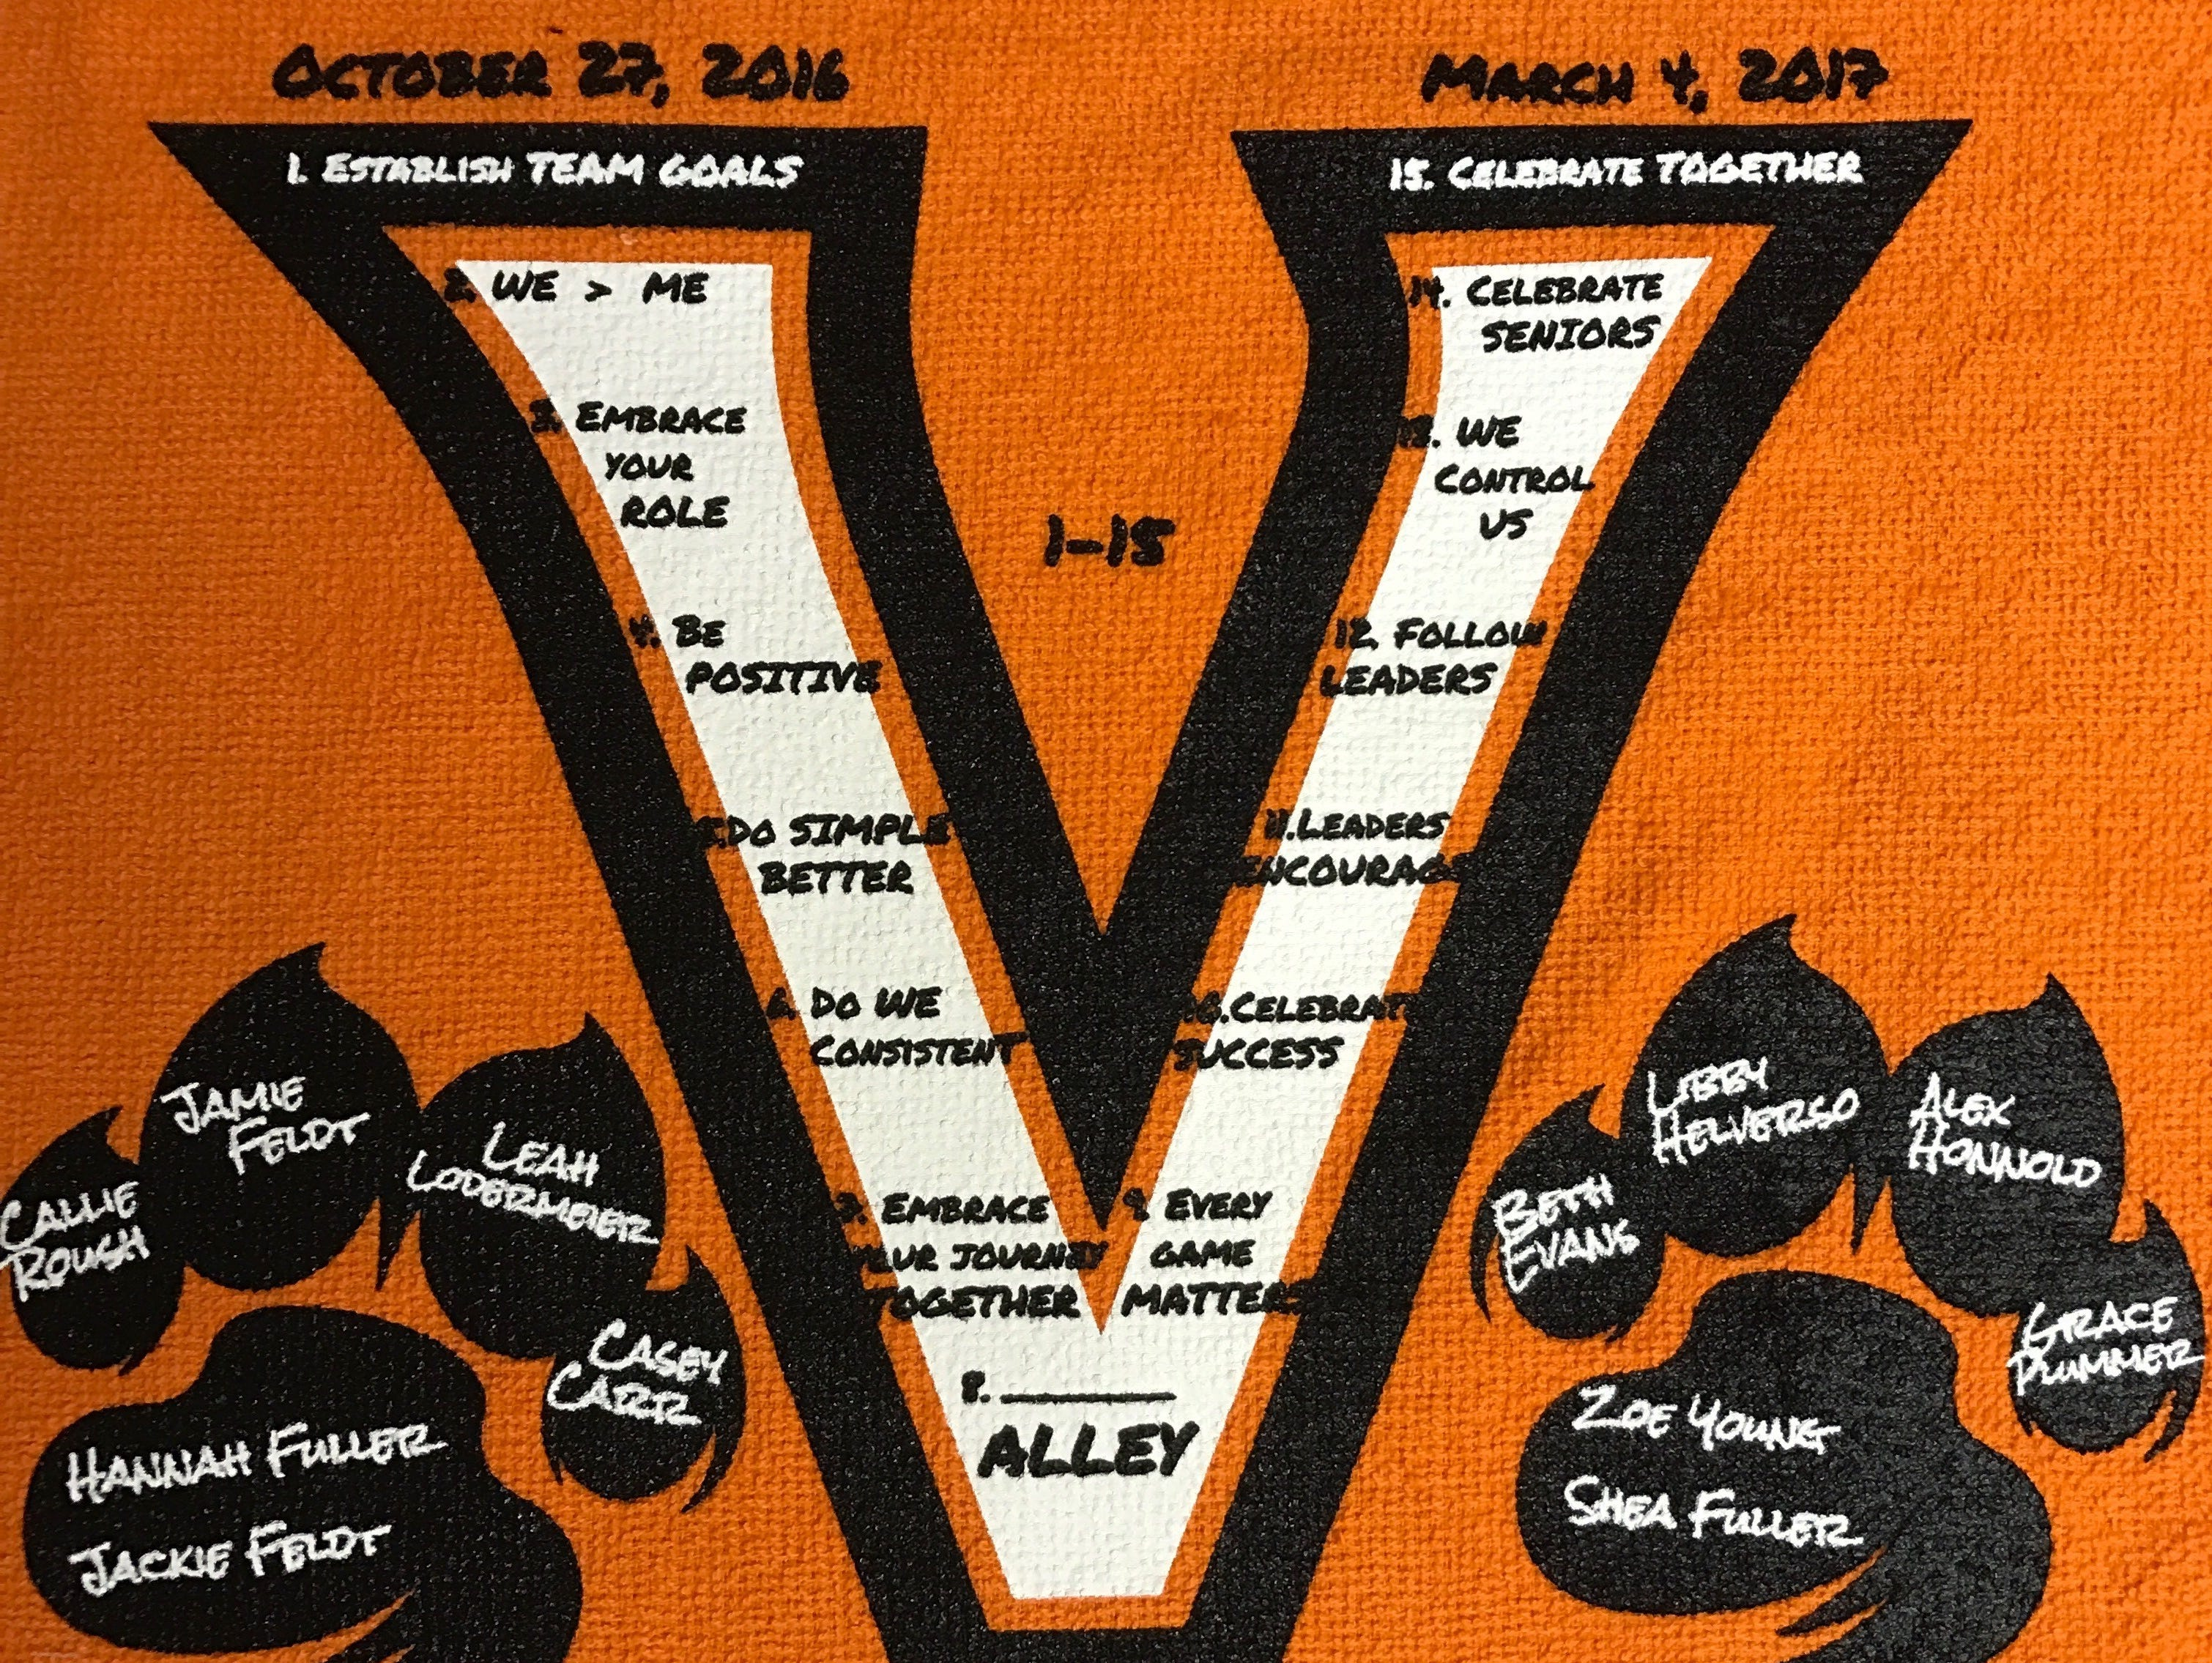 One of the towels Valley head coach Joe Sigrist had made for his girls basketball team. There are 15 team goals and mottos inside the V.